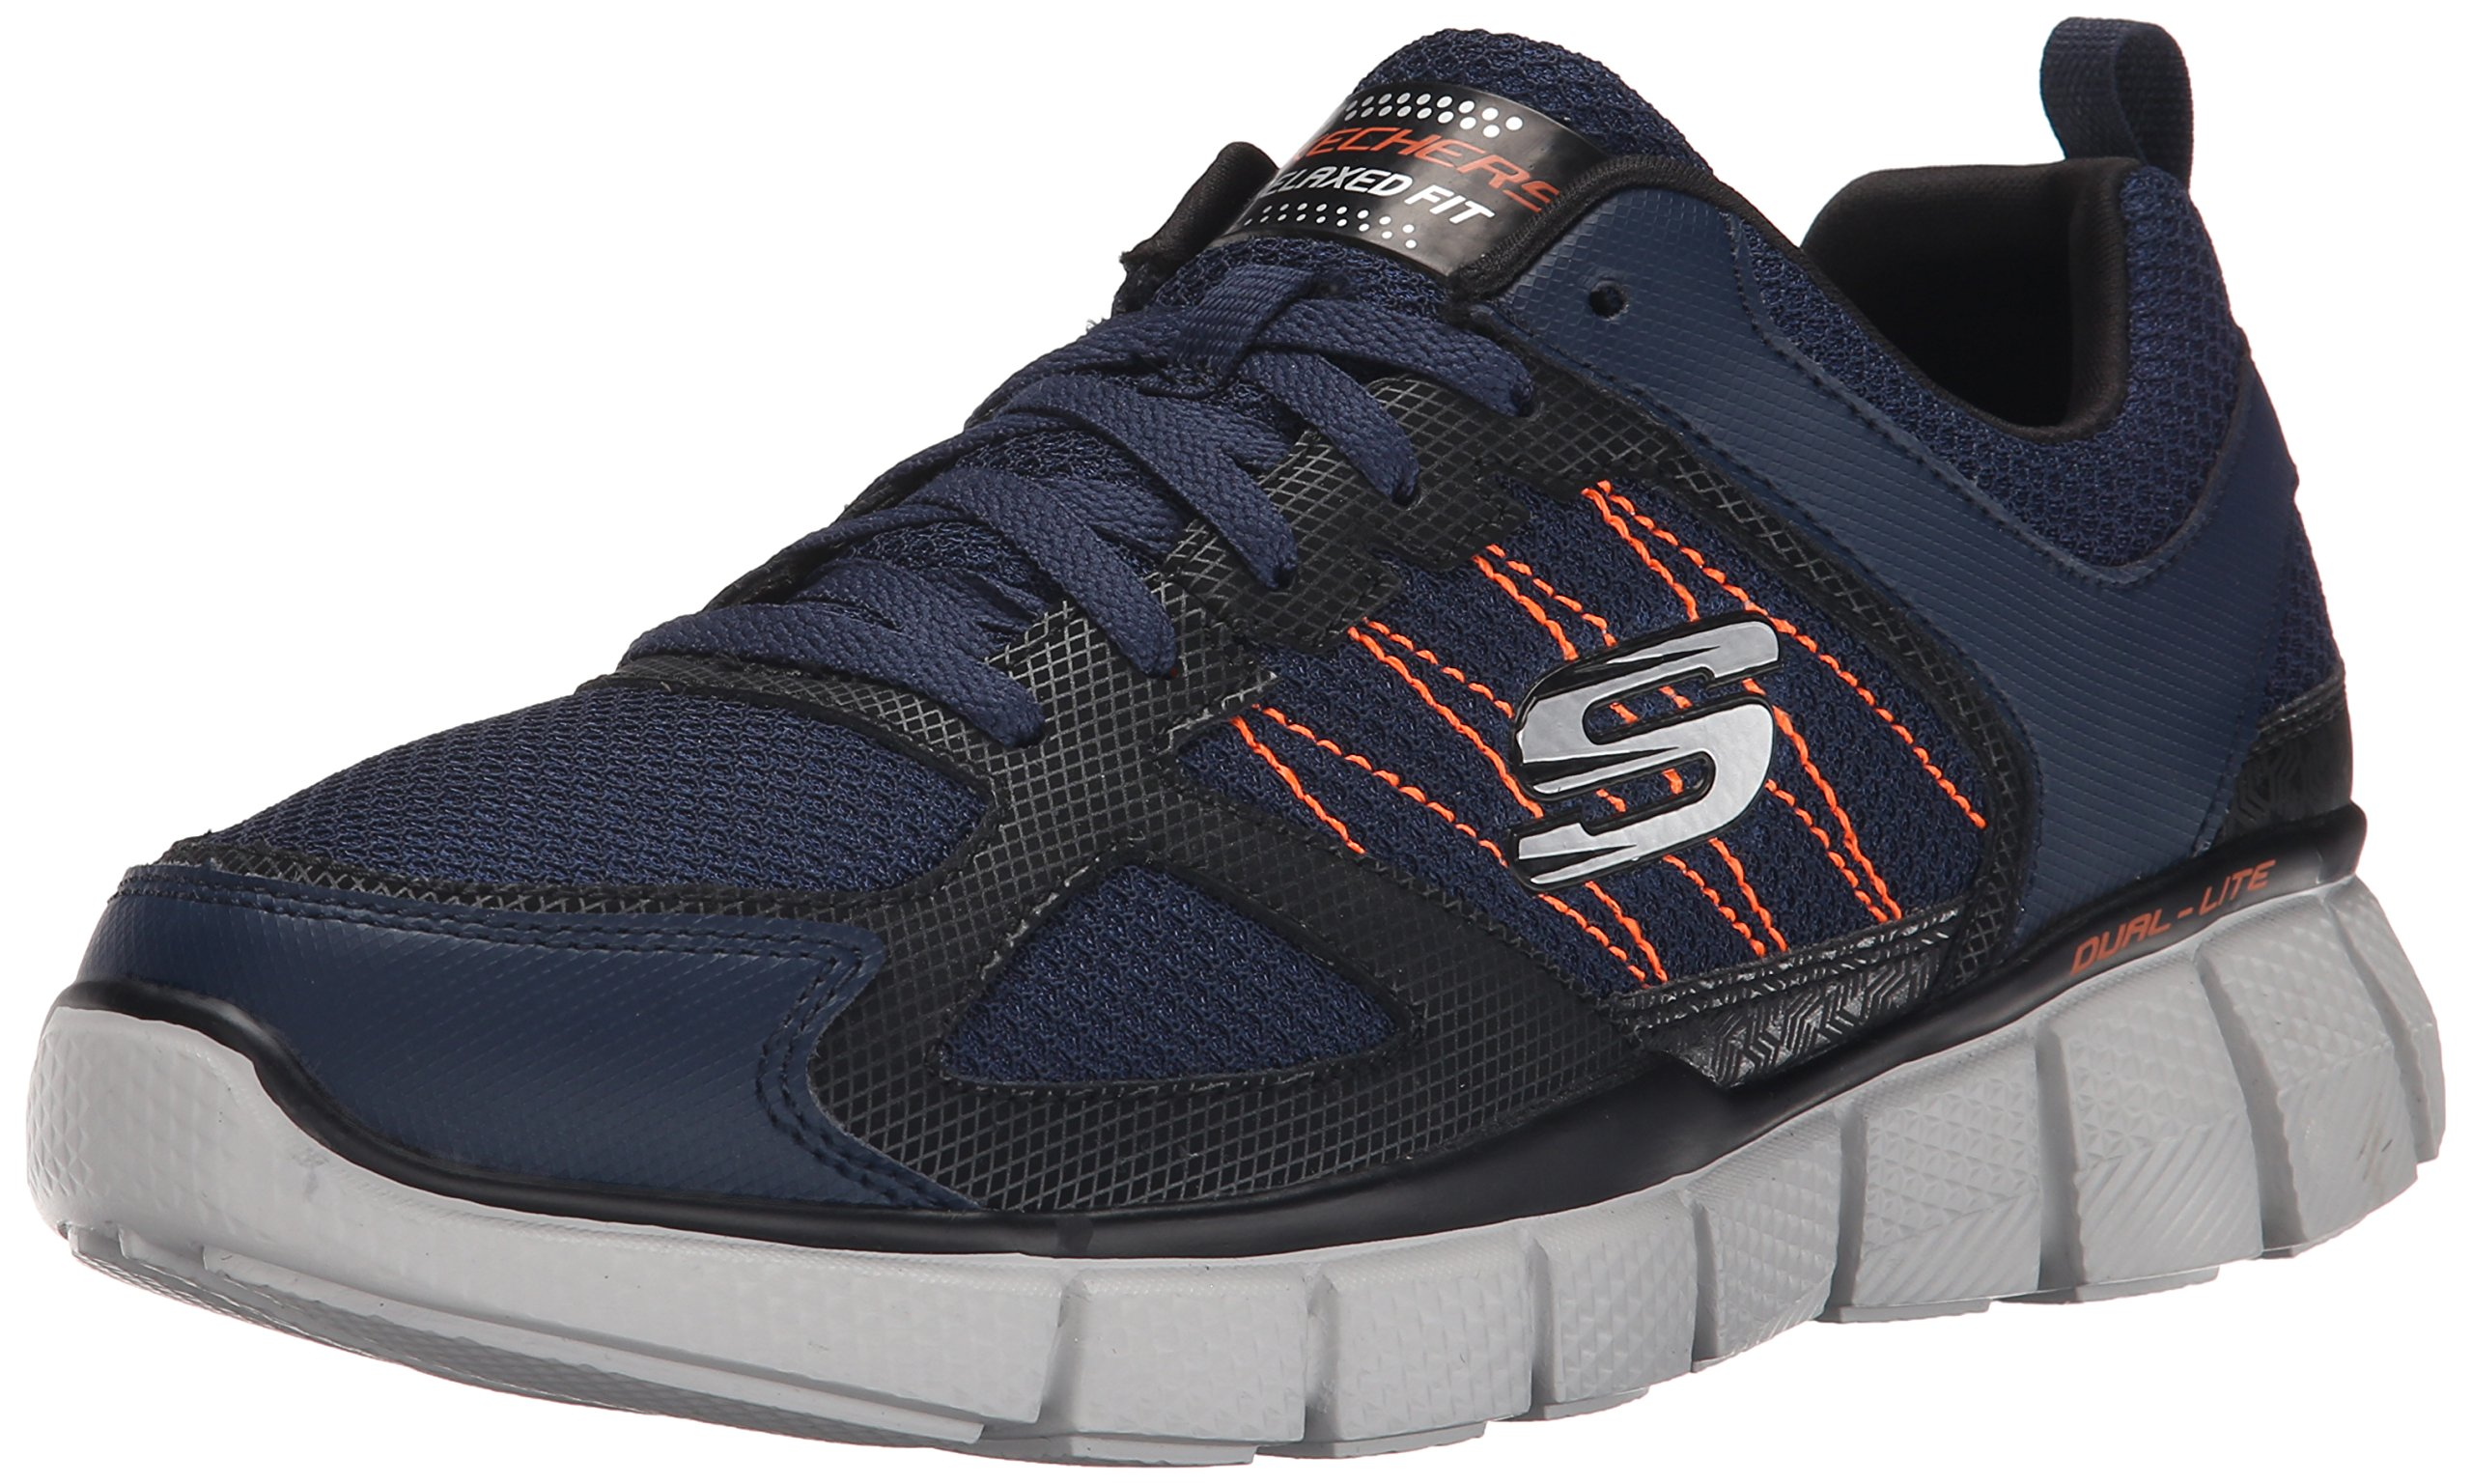 Skechers Sport Men's Equalizer 2.0 True Balance Sneaker,Navy/Orange,11 M US by Skechers